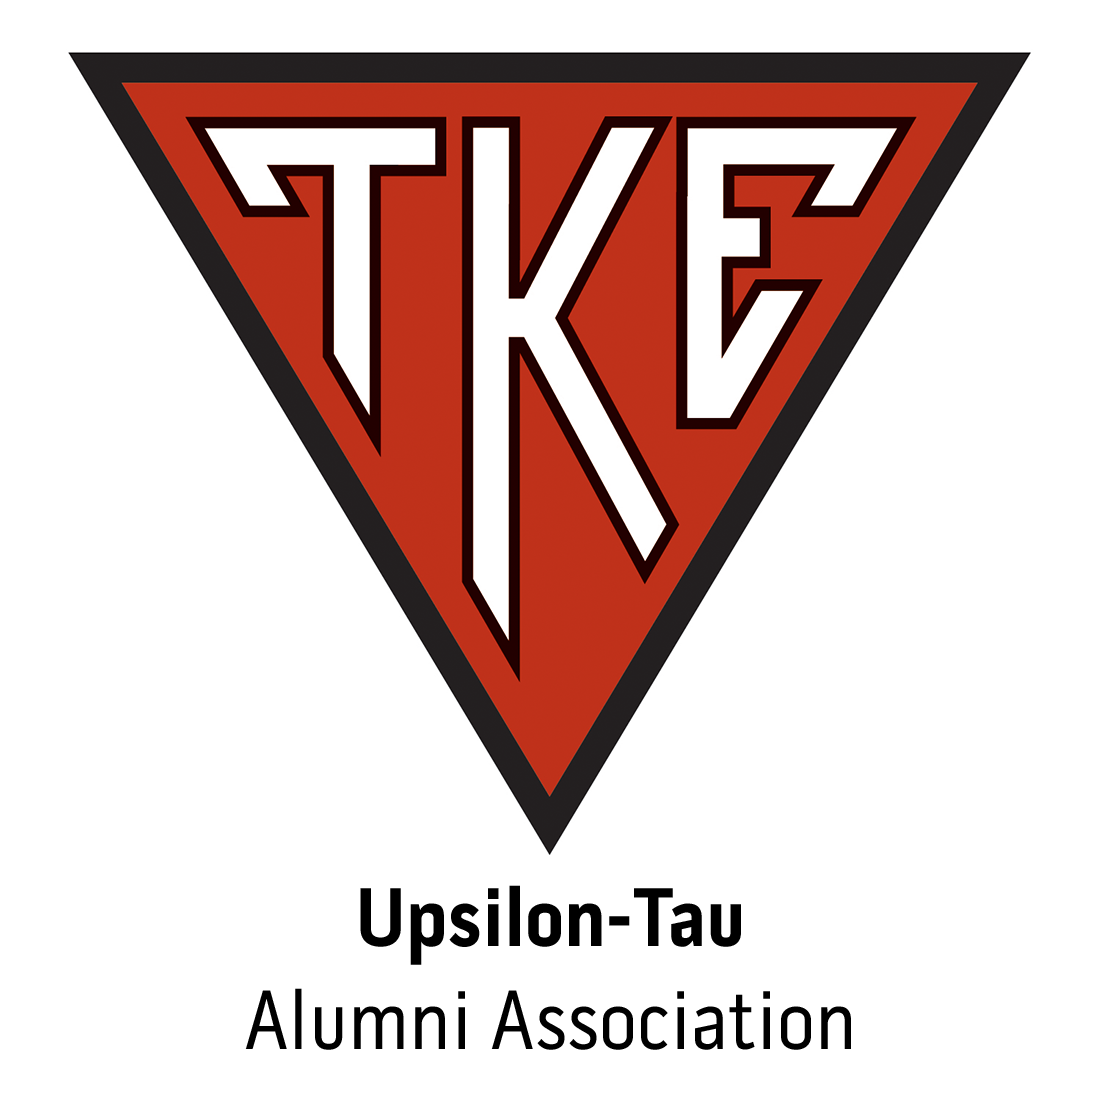 Upsilon-Tau Alumni Association at California State University, Stanislaus